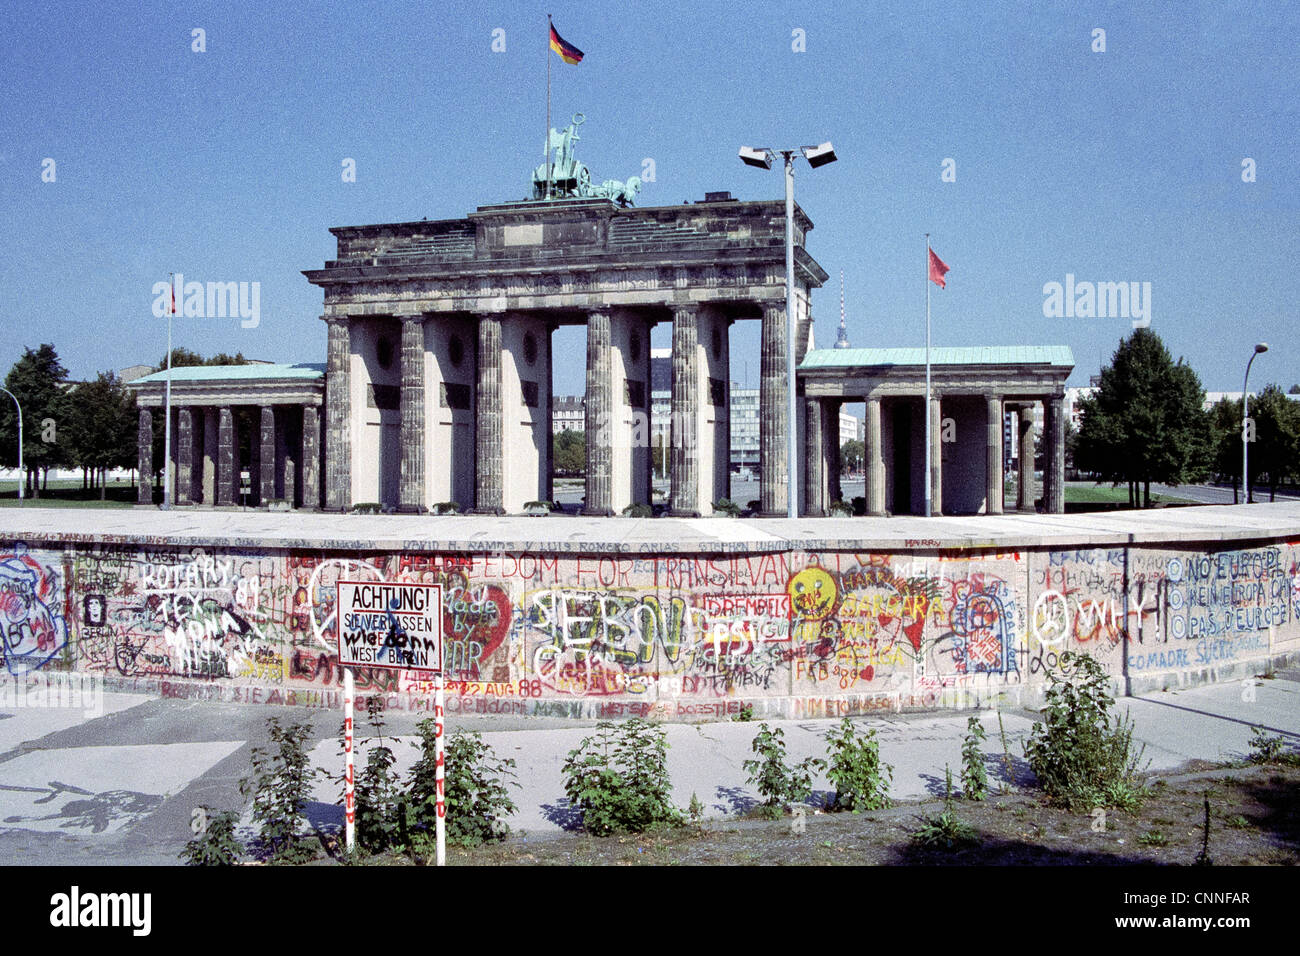 The Berlin Wall at the Brandenburg Gate in 1989 - Stock Image